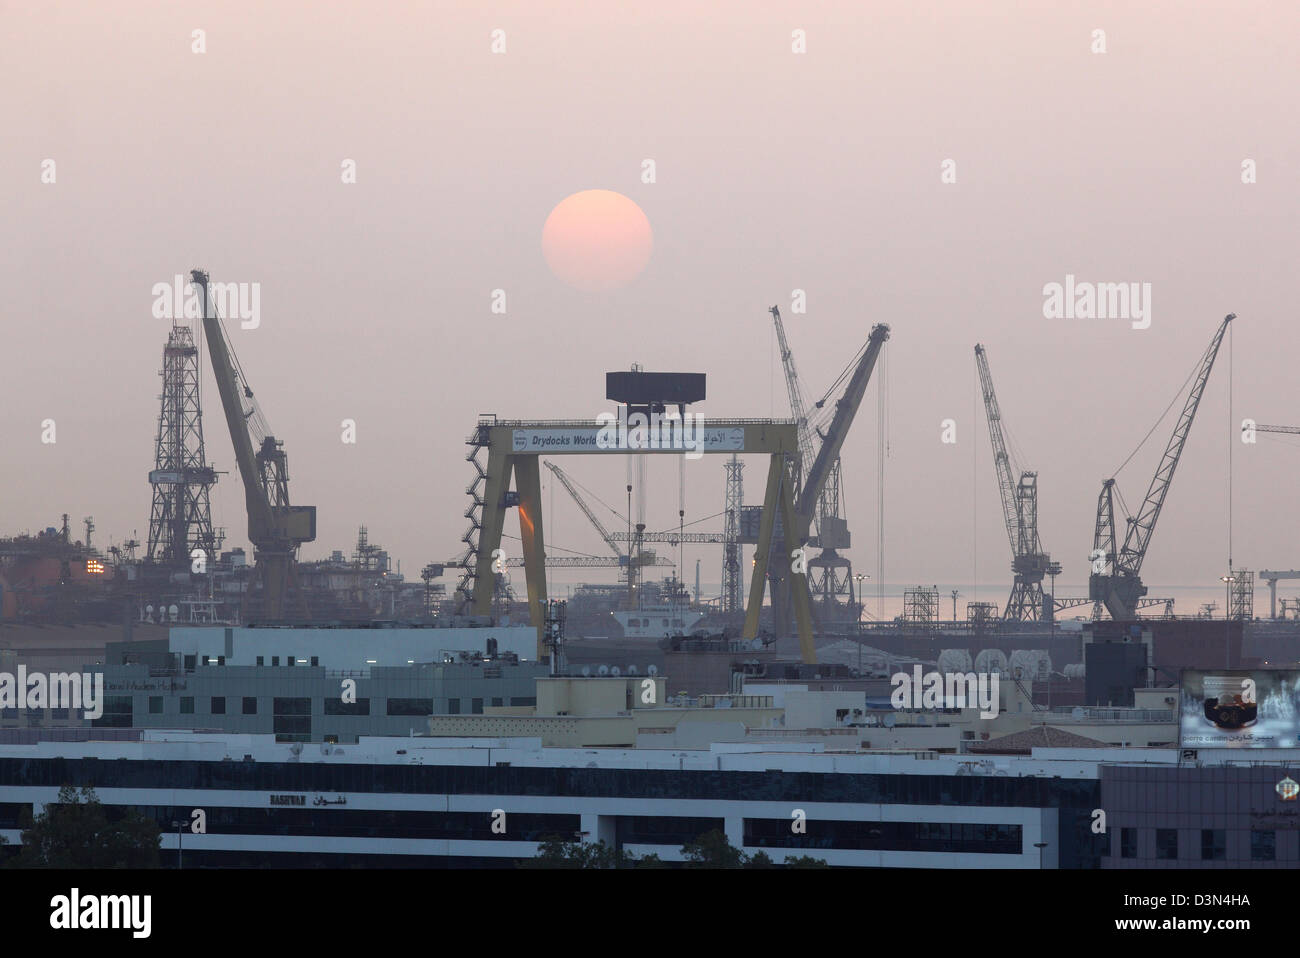 Dubai drydocks stock photos dubai drydocks stock images alamy dubai united arab emirates the drydocks world loading cranes at sunset stock image gumiabroncs Images